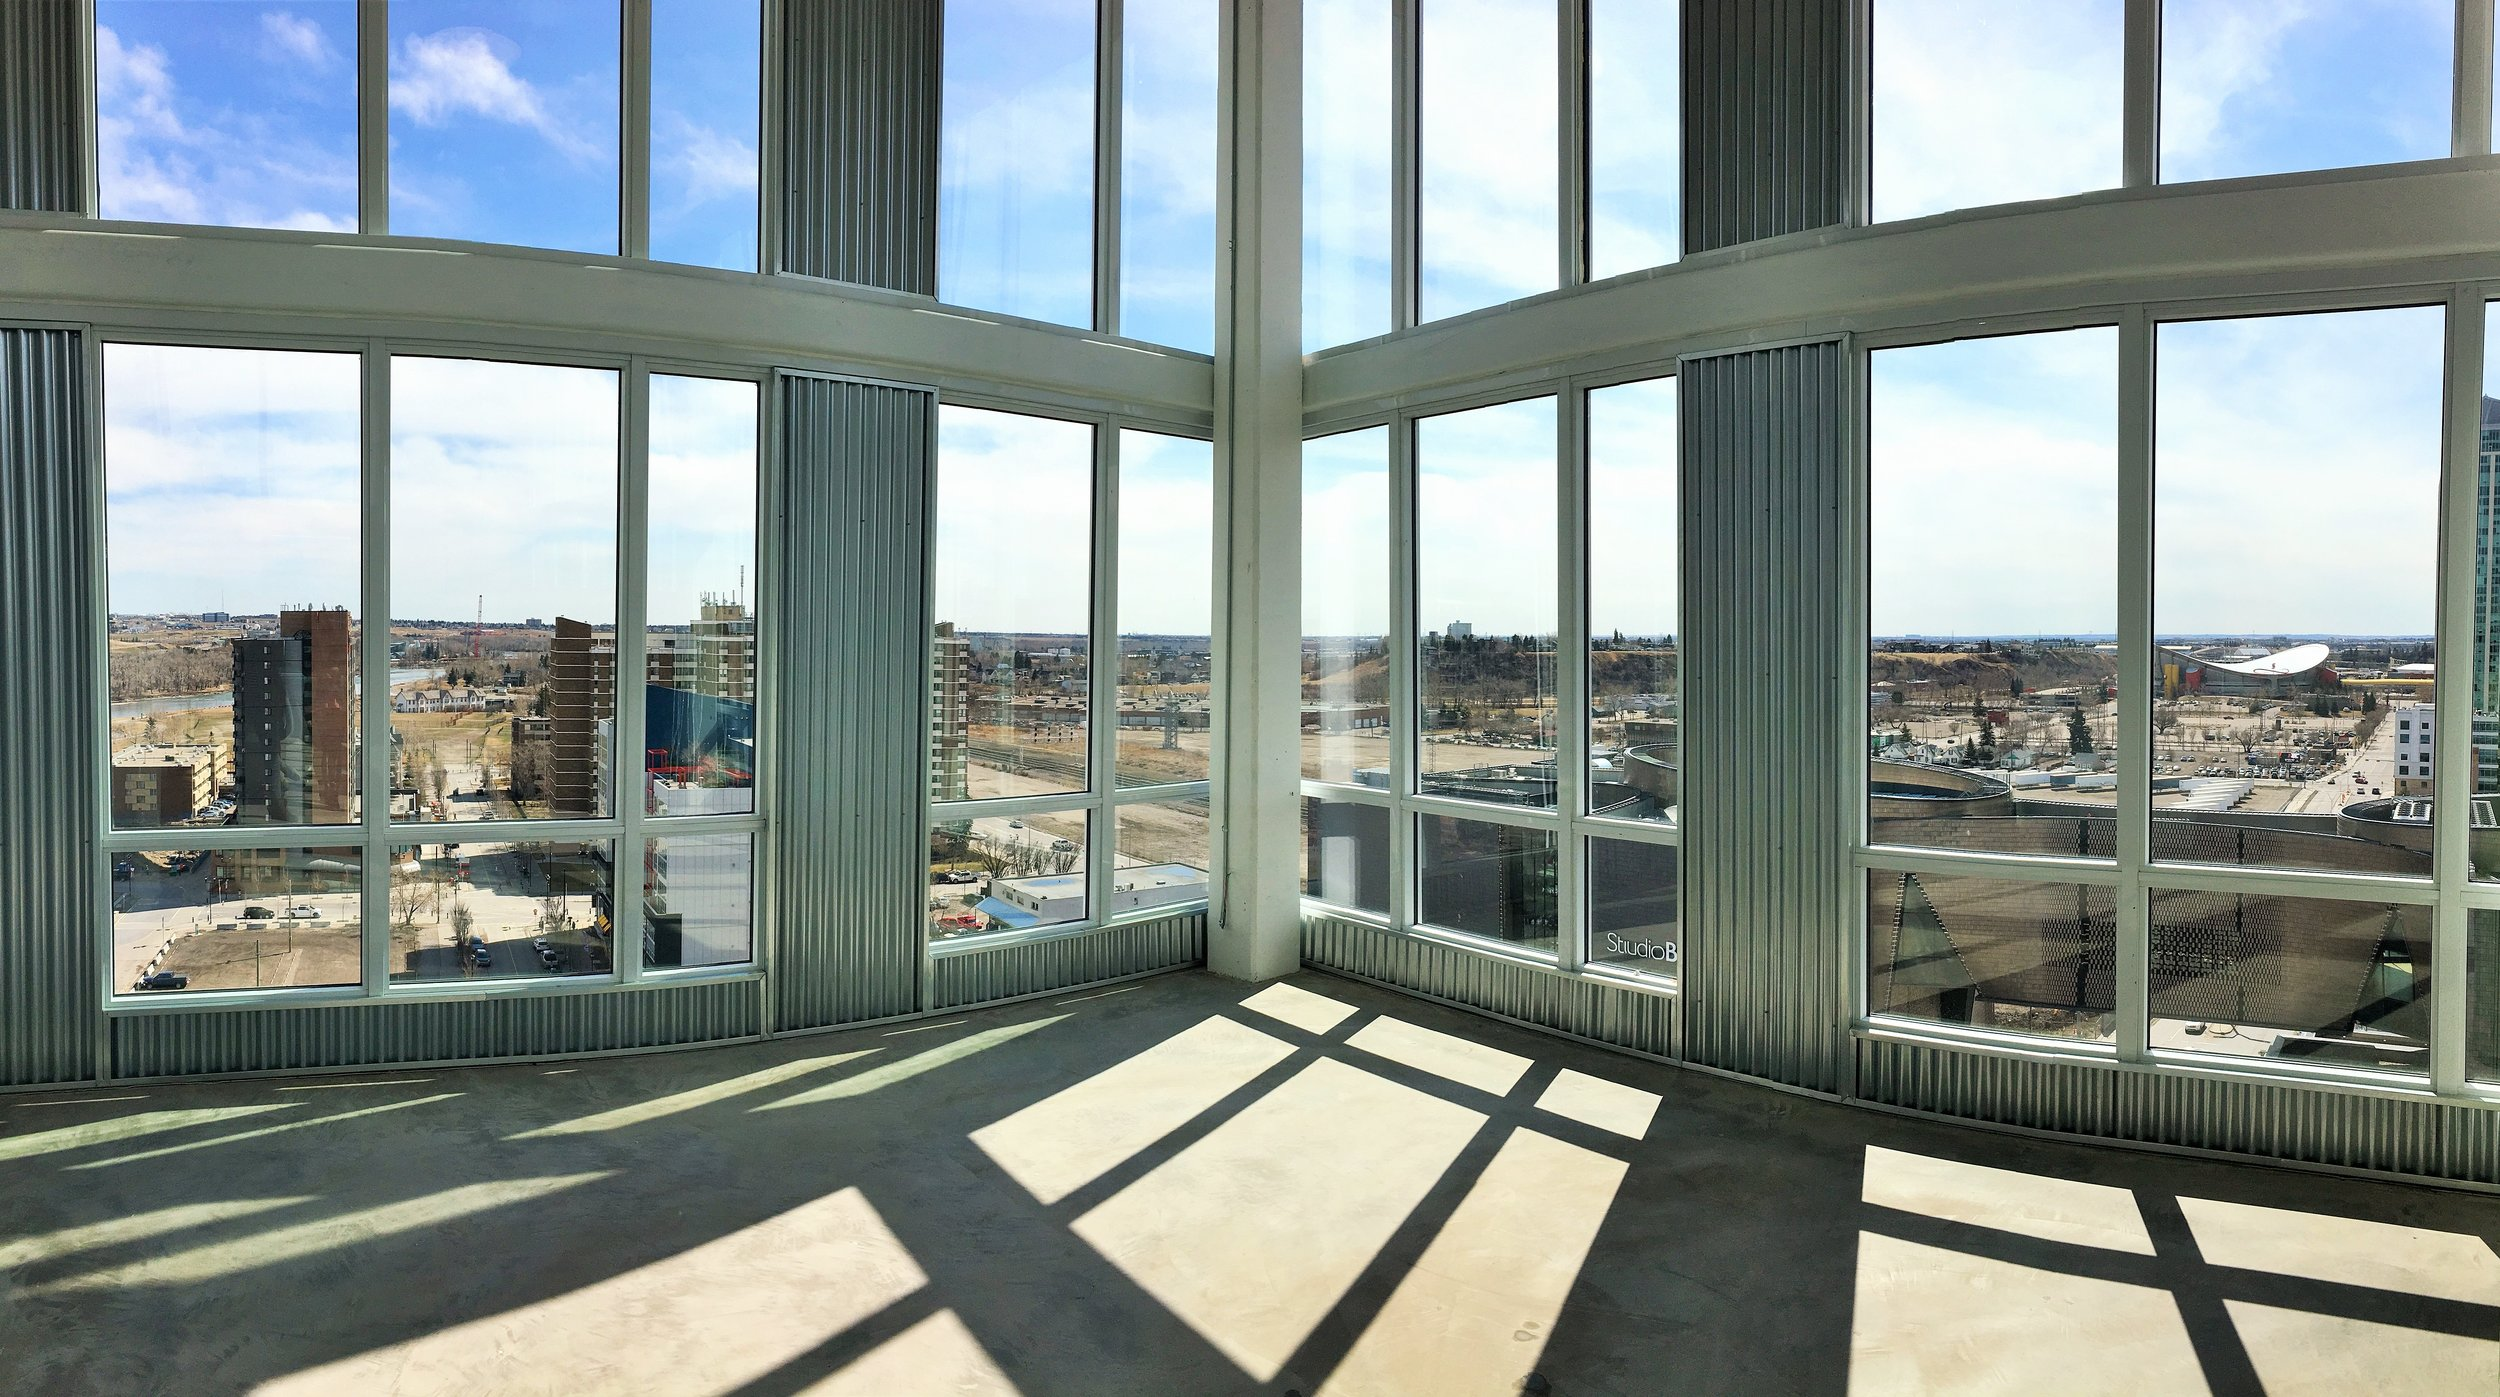 This space will host the fitness centre. Check out the amazing view!